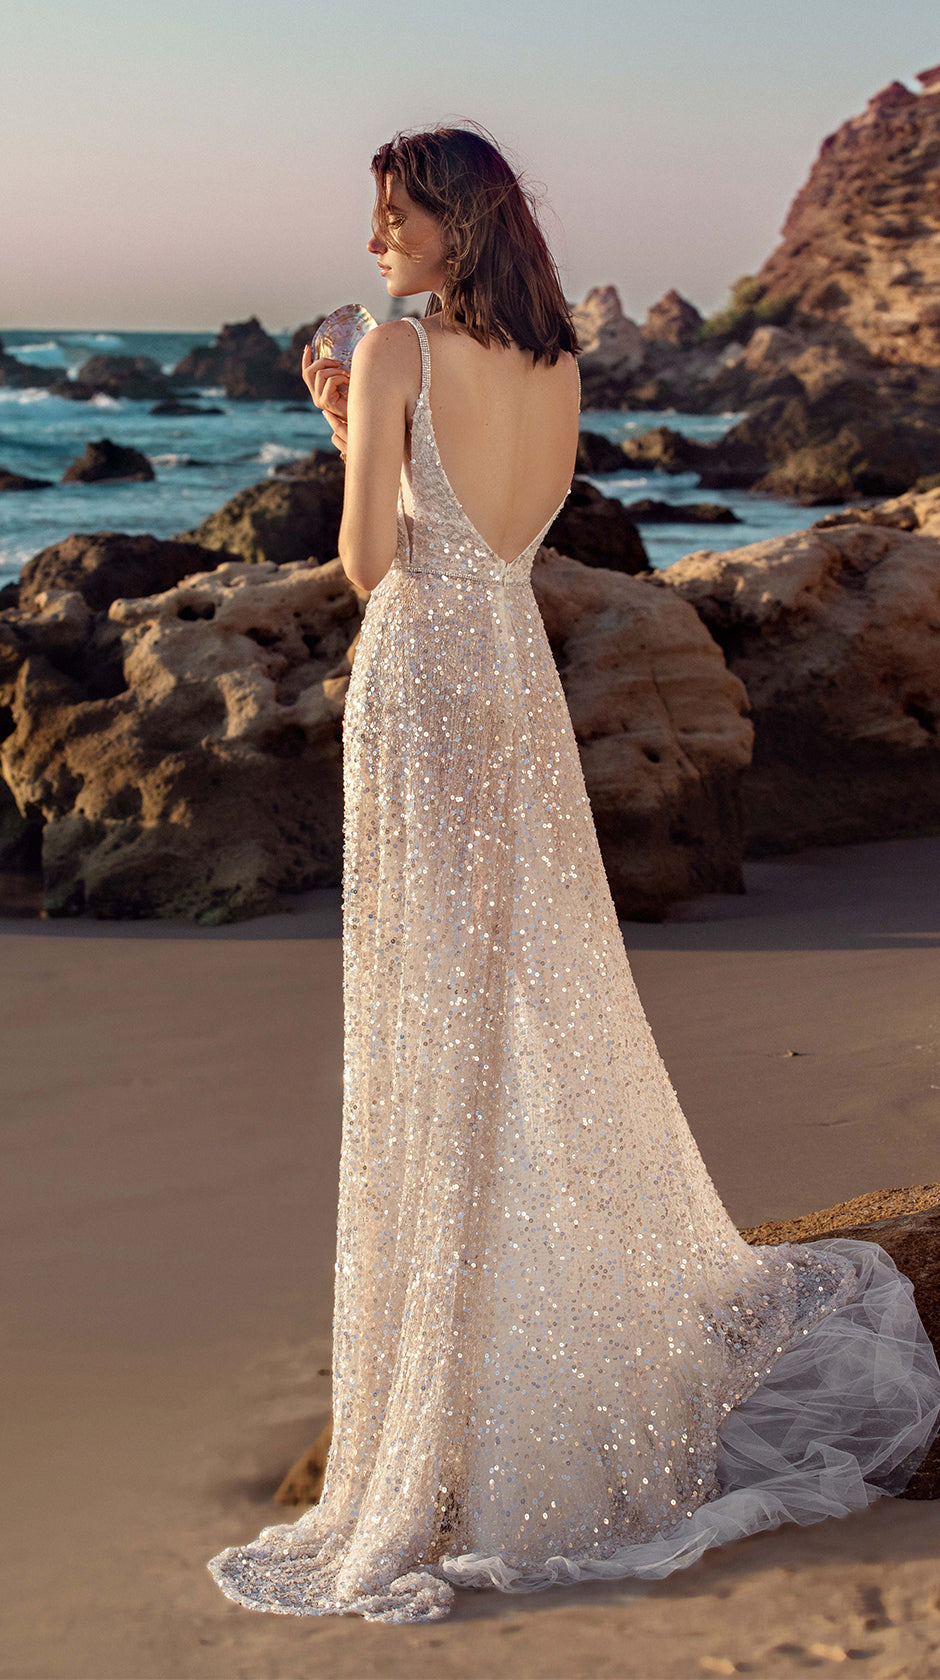 Astera - New, Gown, GALA by Galia Lahav - Eternal Bridal